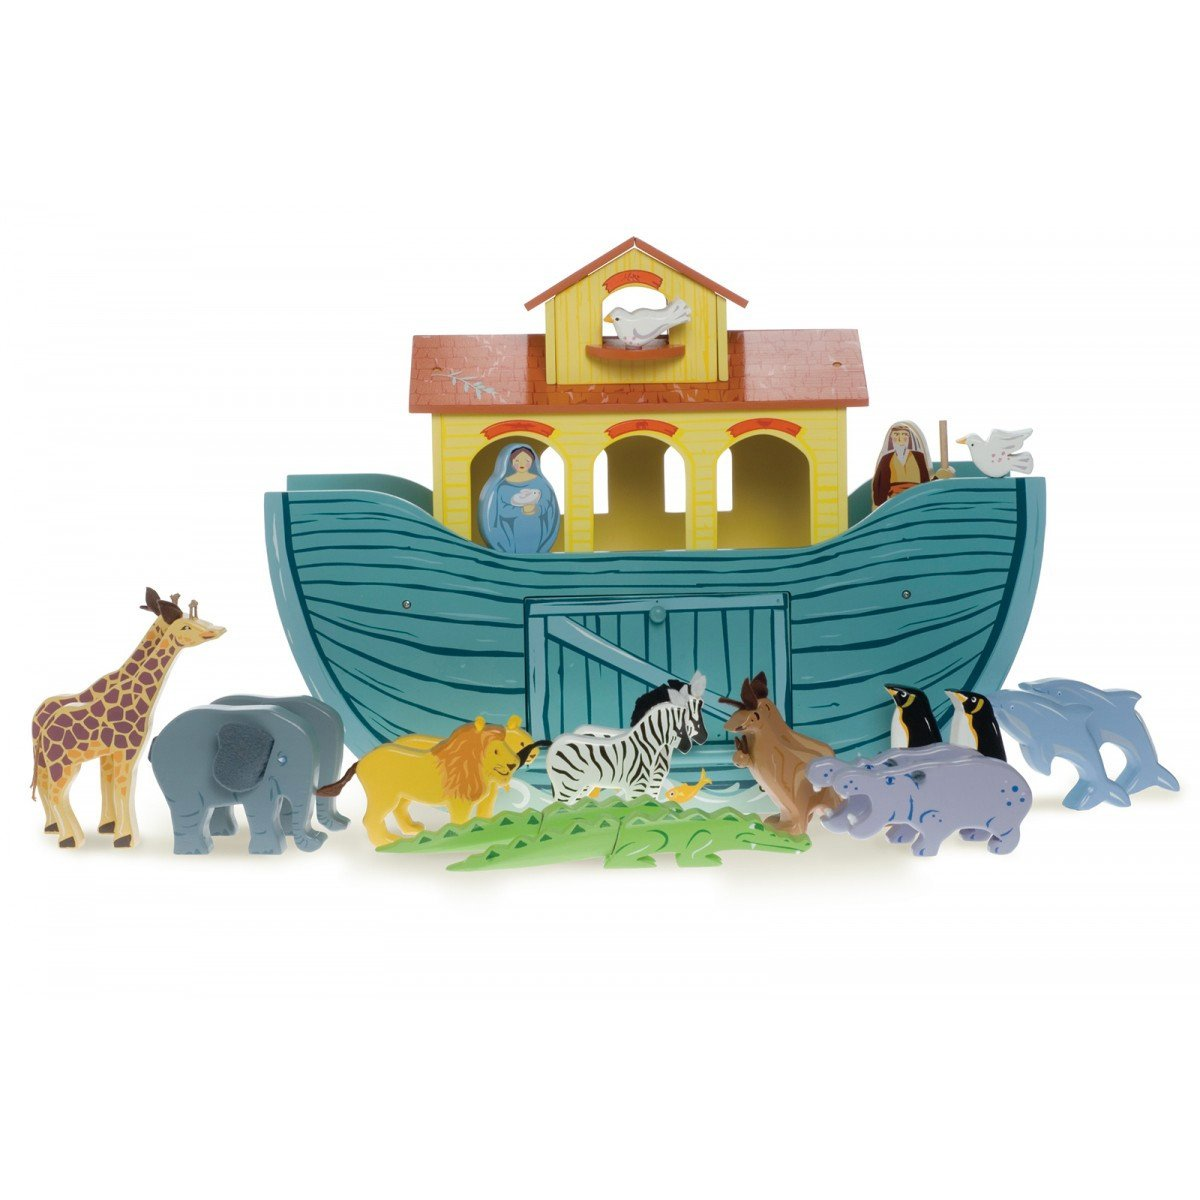 Le Toy Van Noahs Great Ark Le Toy Van General at Little Earth Nest Eco Shop